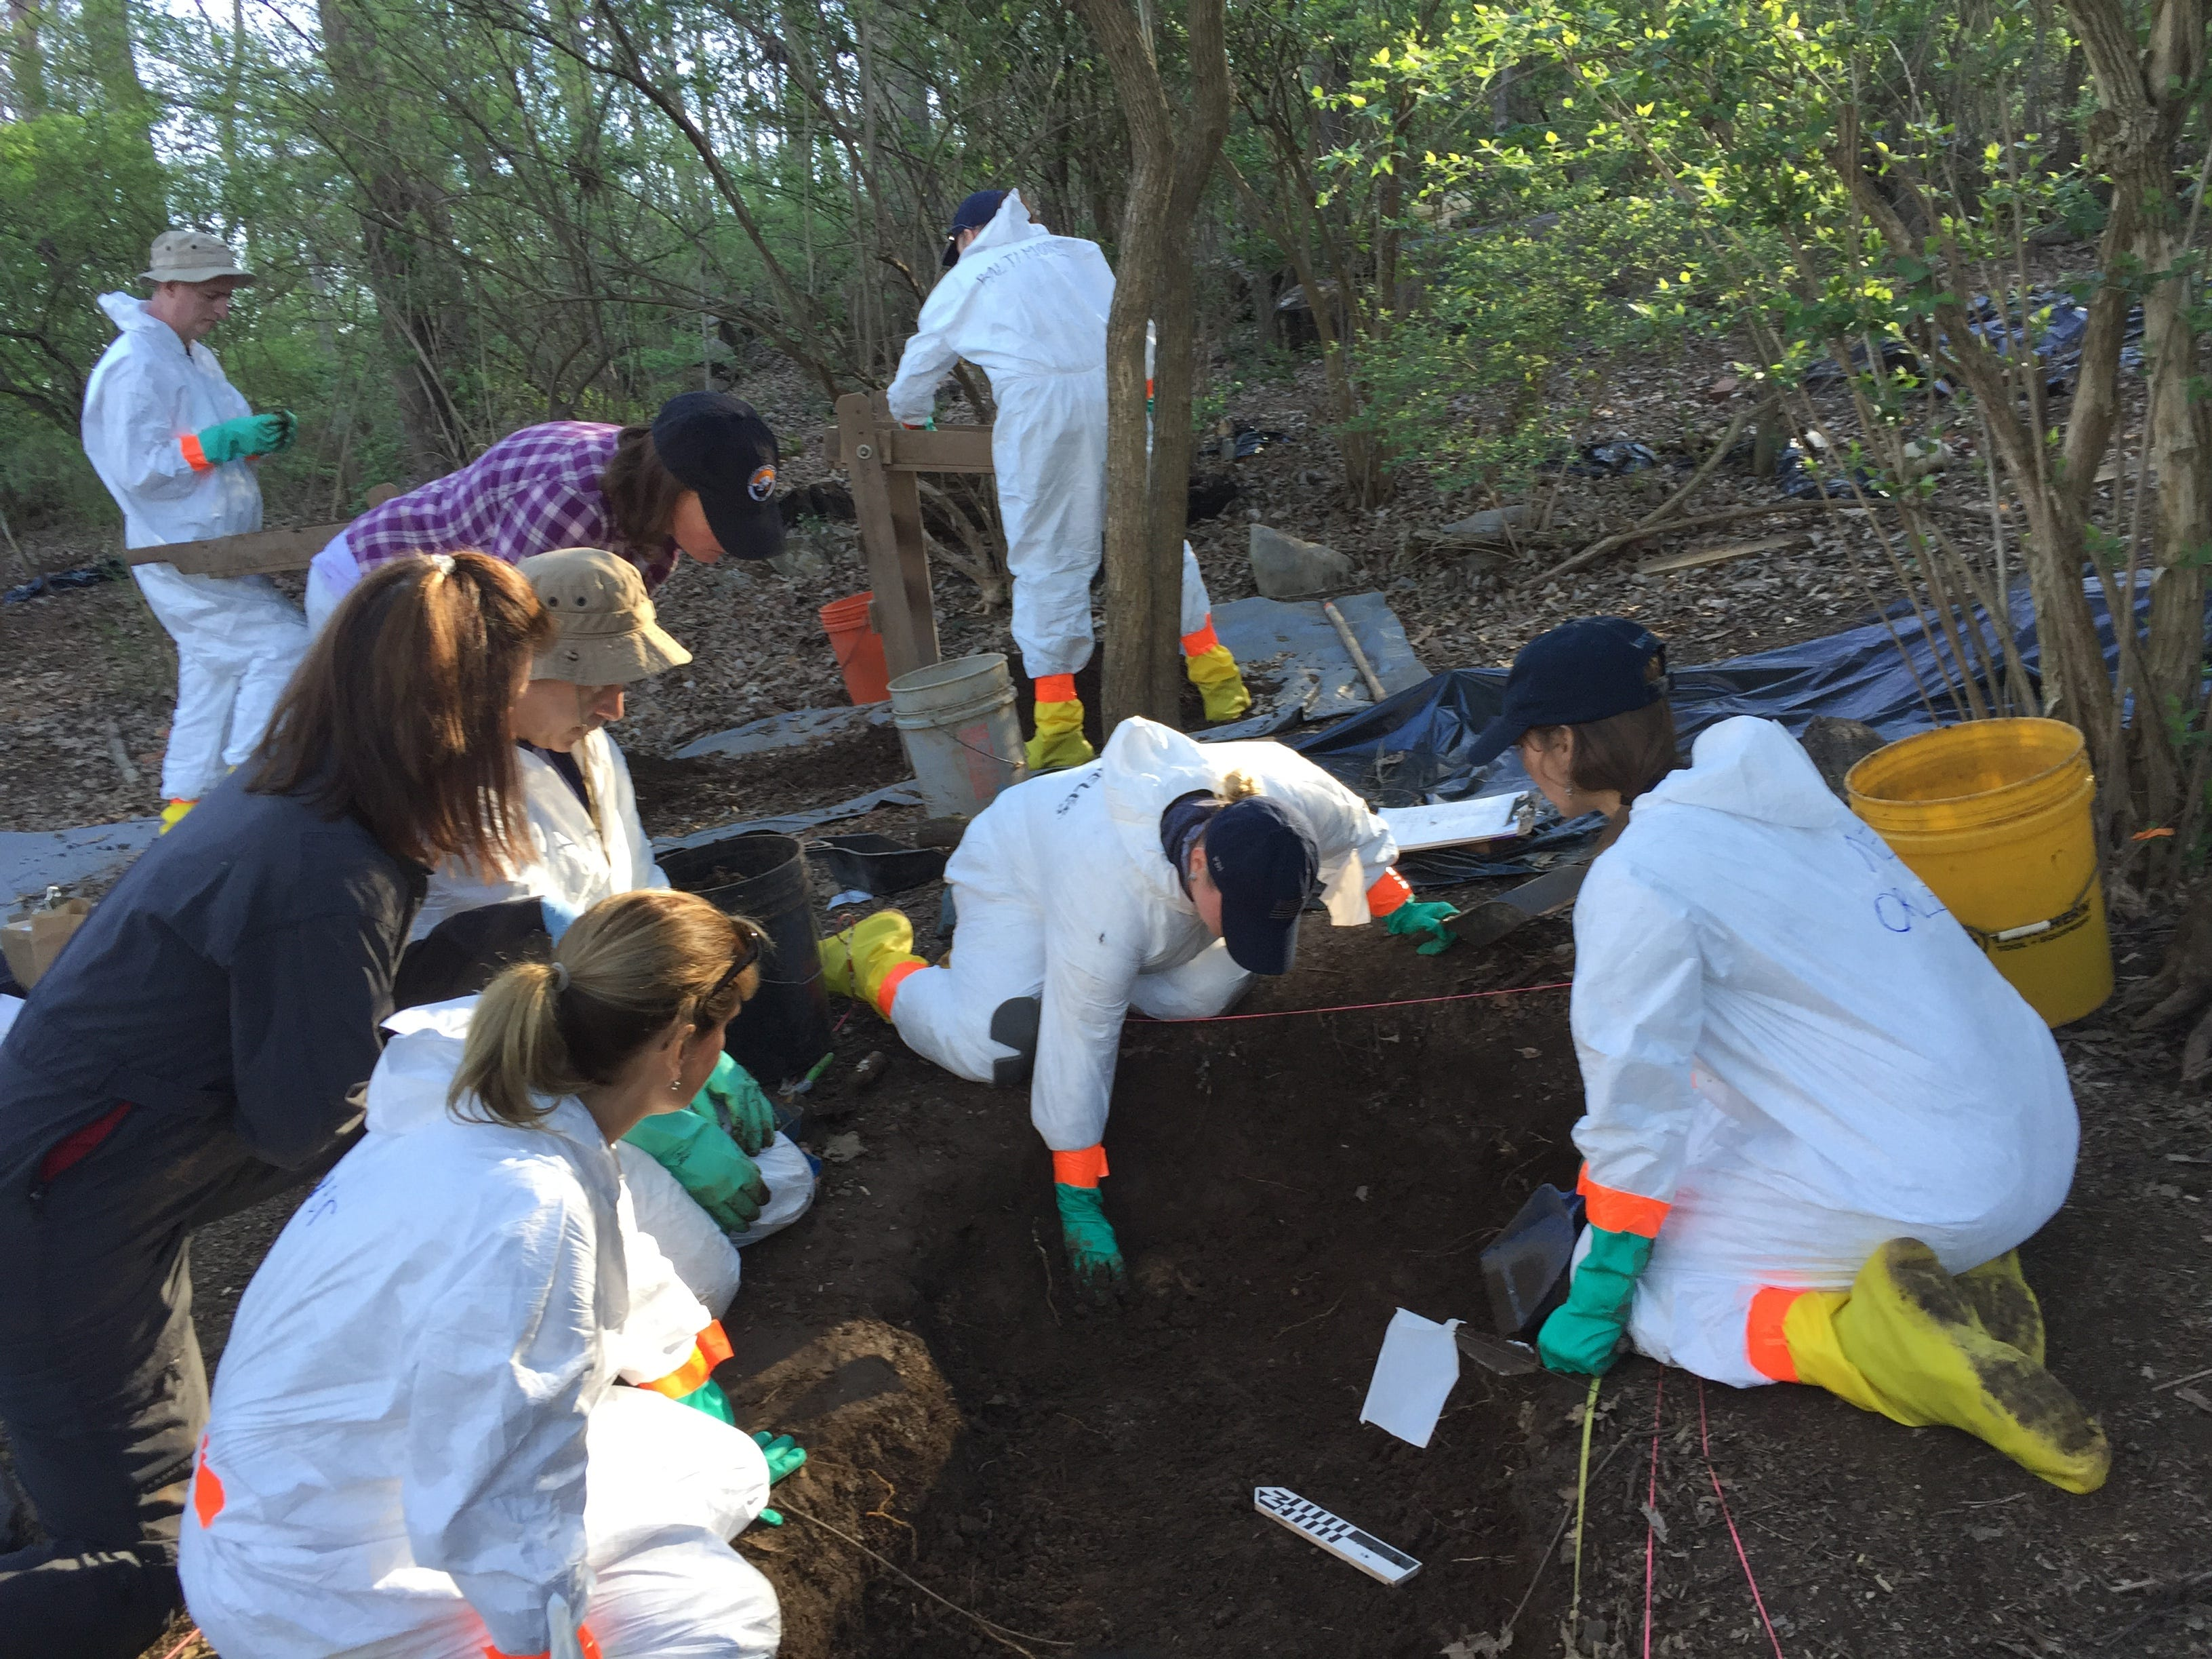 FBI agents from evidence response teams across the country work with staff from the University of Tennessee Forensic Anthropology Center, often called the body farm, to recover human remains on Thursday, March 17, 2016. FBI agents from across the country are attending the weeklong training.